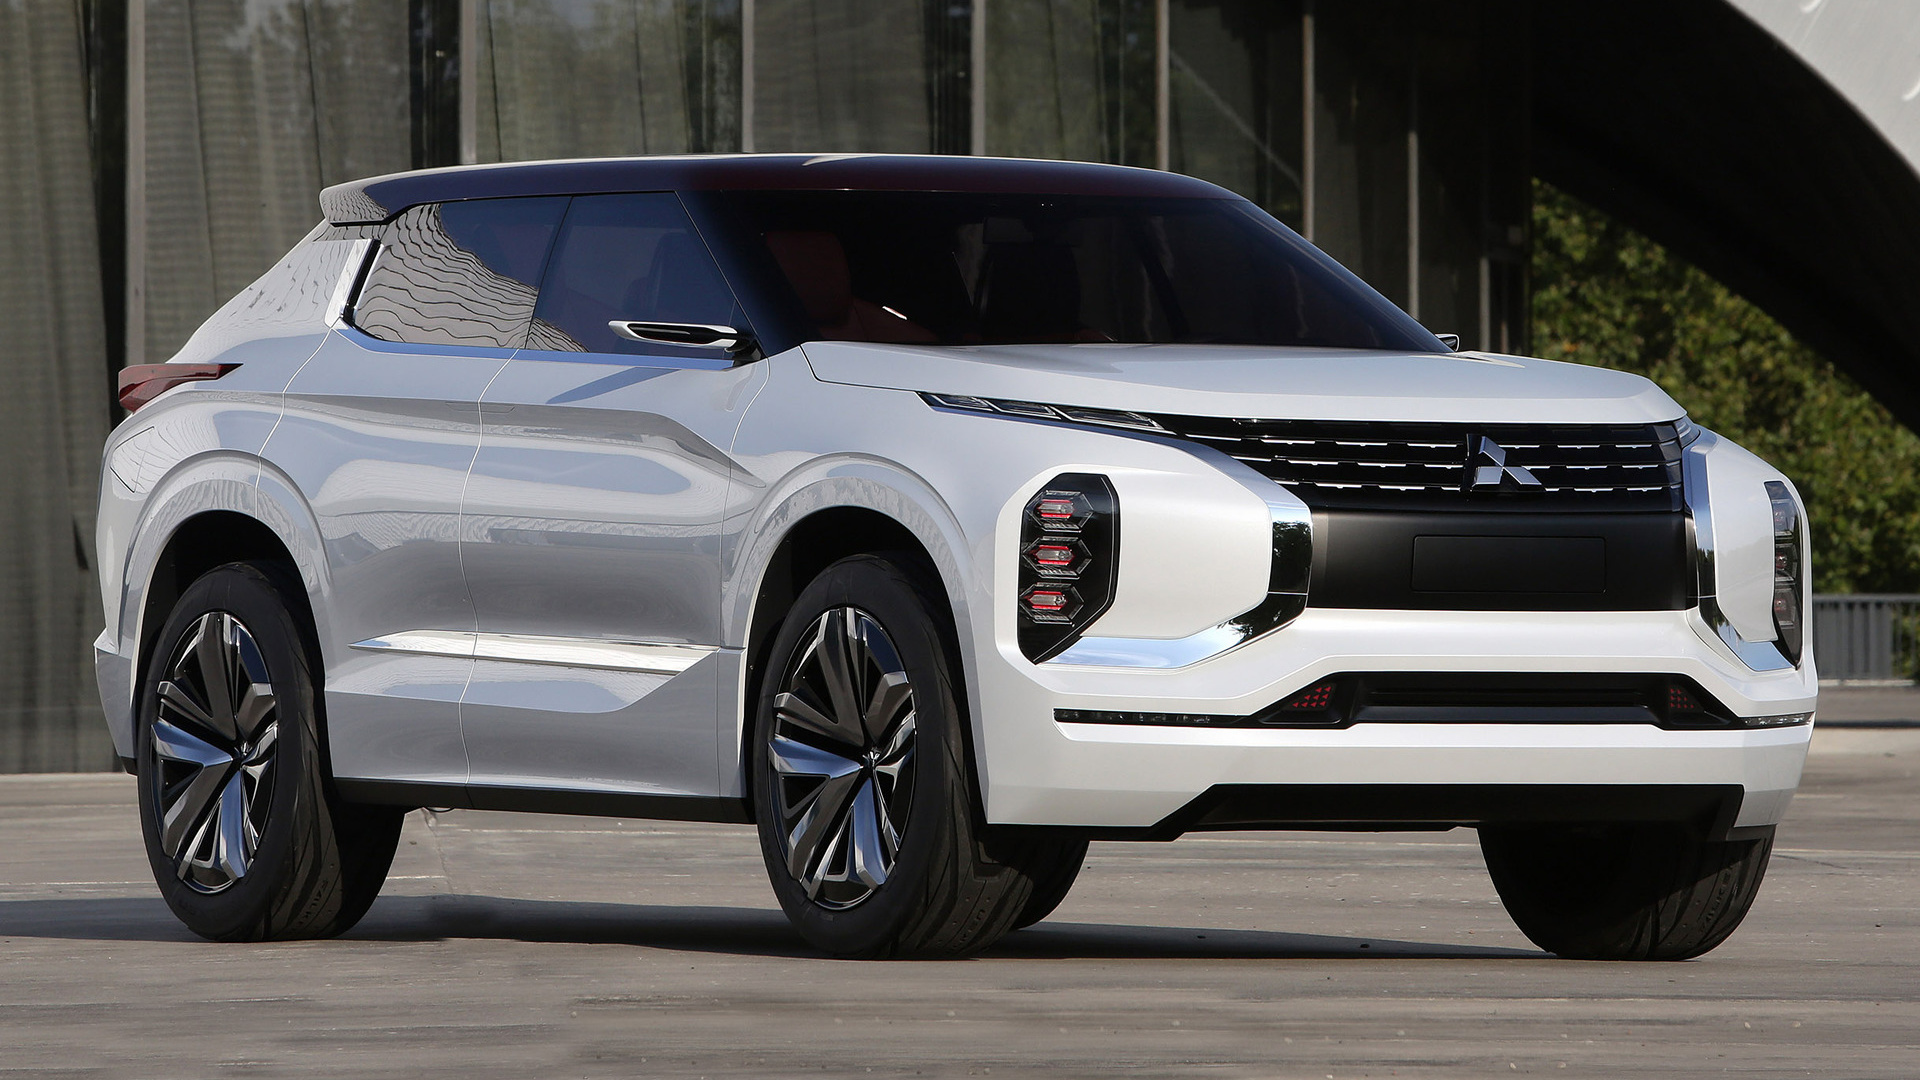 Elegant Mitsubishi GTPHEV Concept 2016 Wallpapers And HD Images